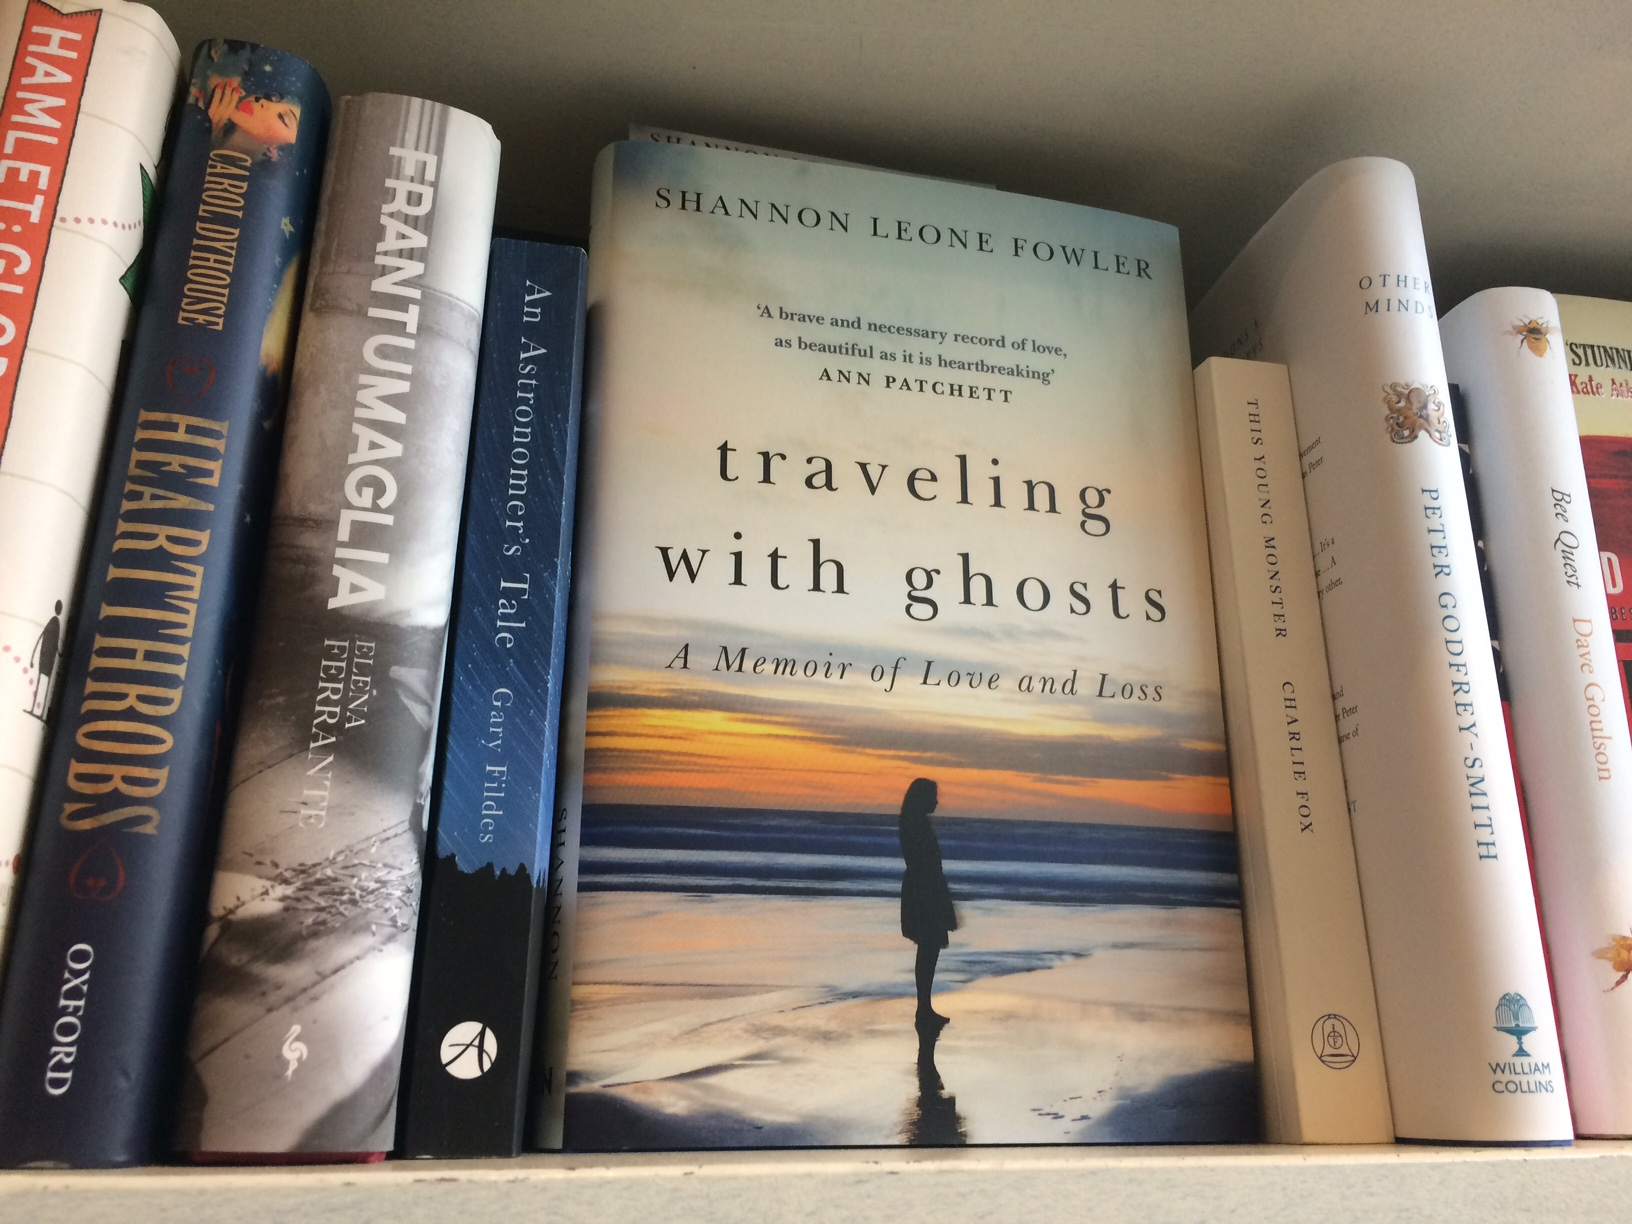 Shannon Leone Fowler's 'Traveling with Ghosts' Reading at Clapham Books